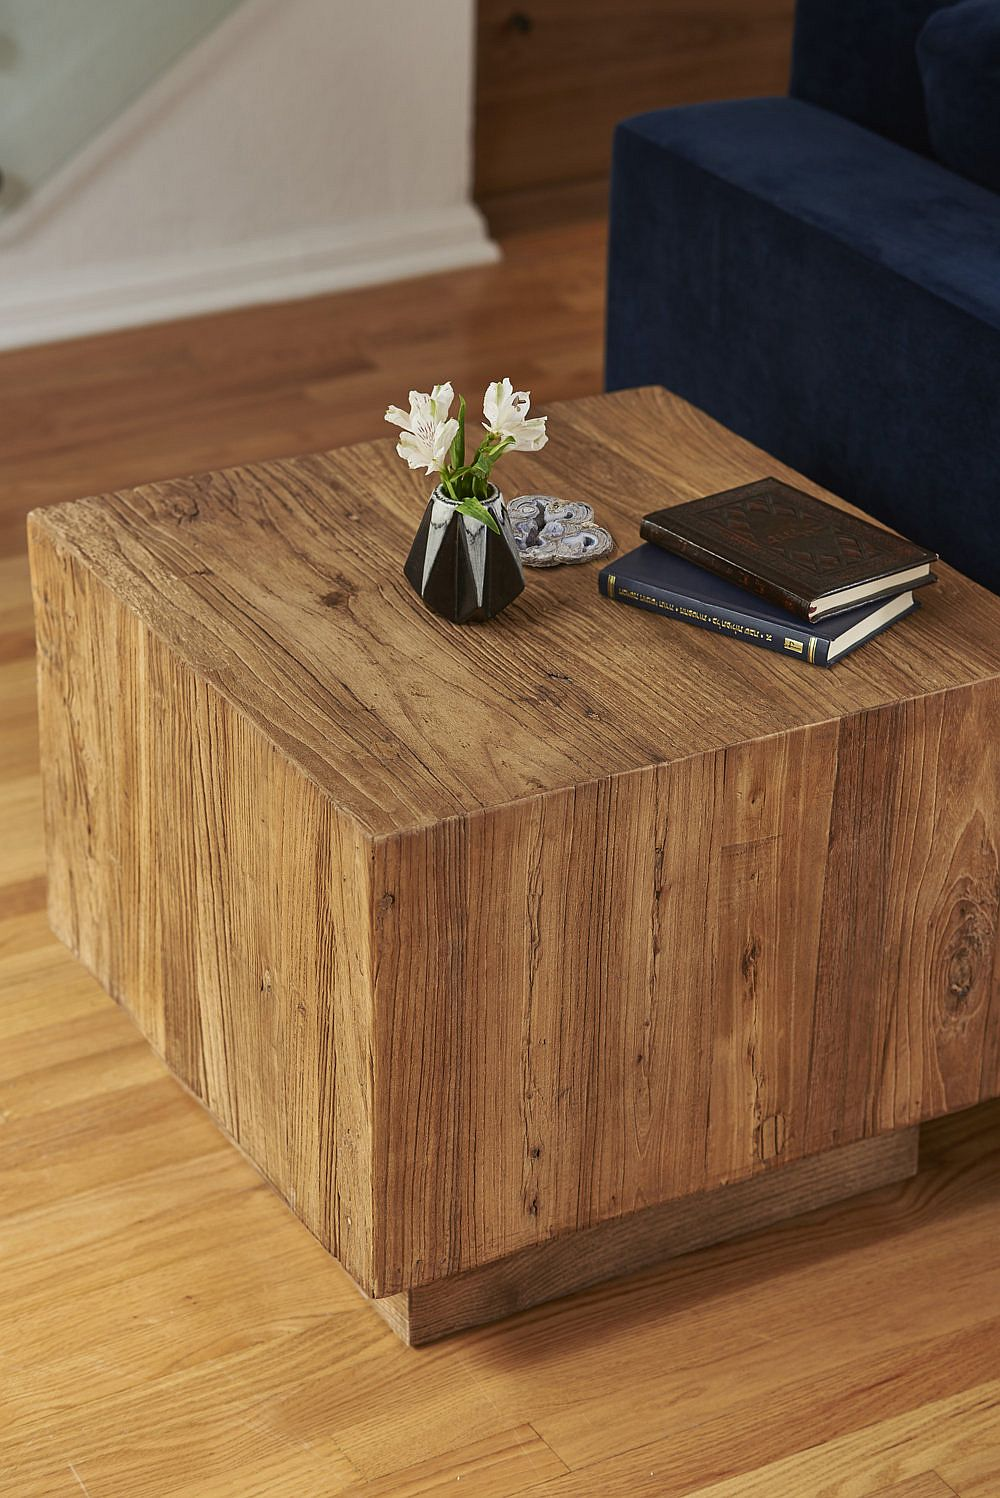 Minimal wooden coffee table for the living room